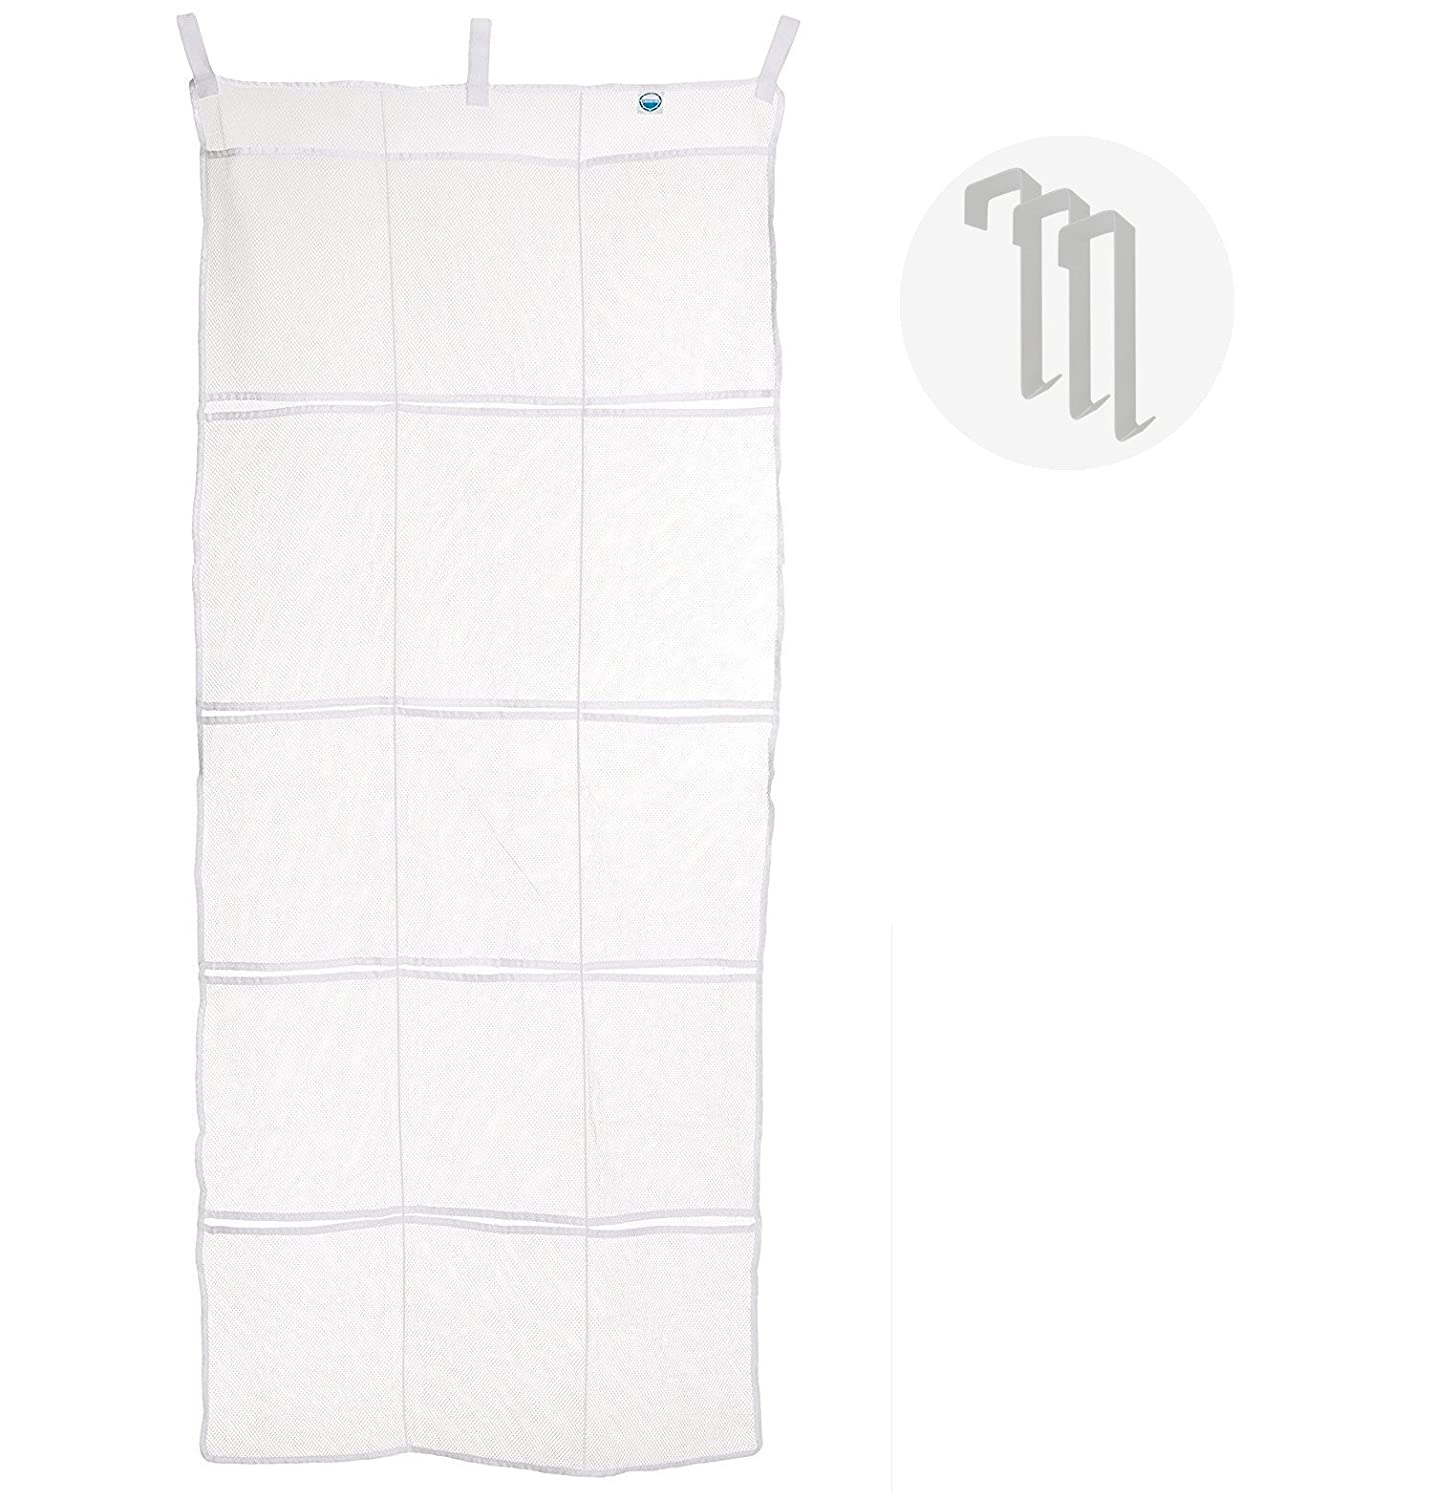 Cruise On Over The Door Organizer & Shoe Holder (Fire Retardant | White Mesh) 15 Pocket FBA_B01HH6NLQ4